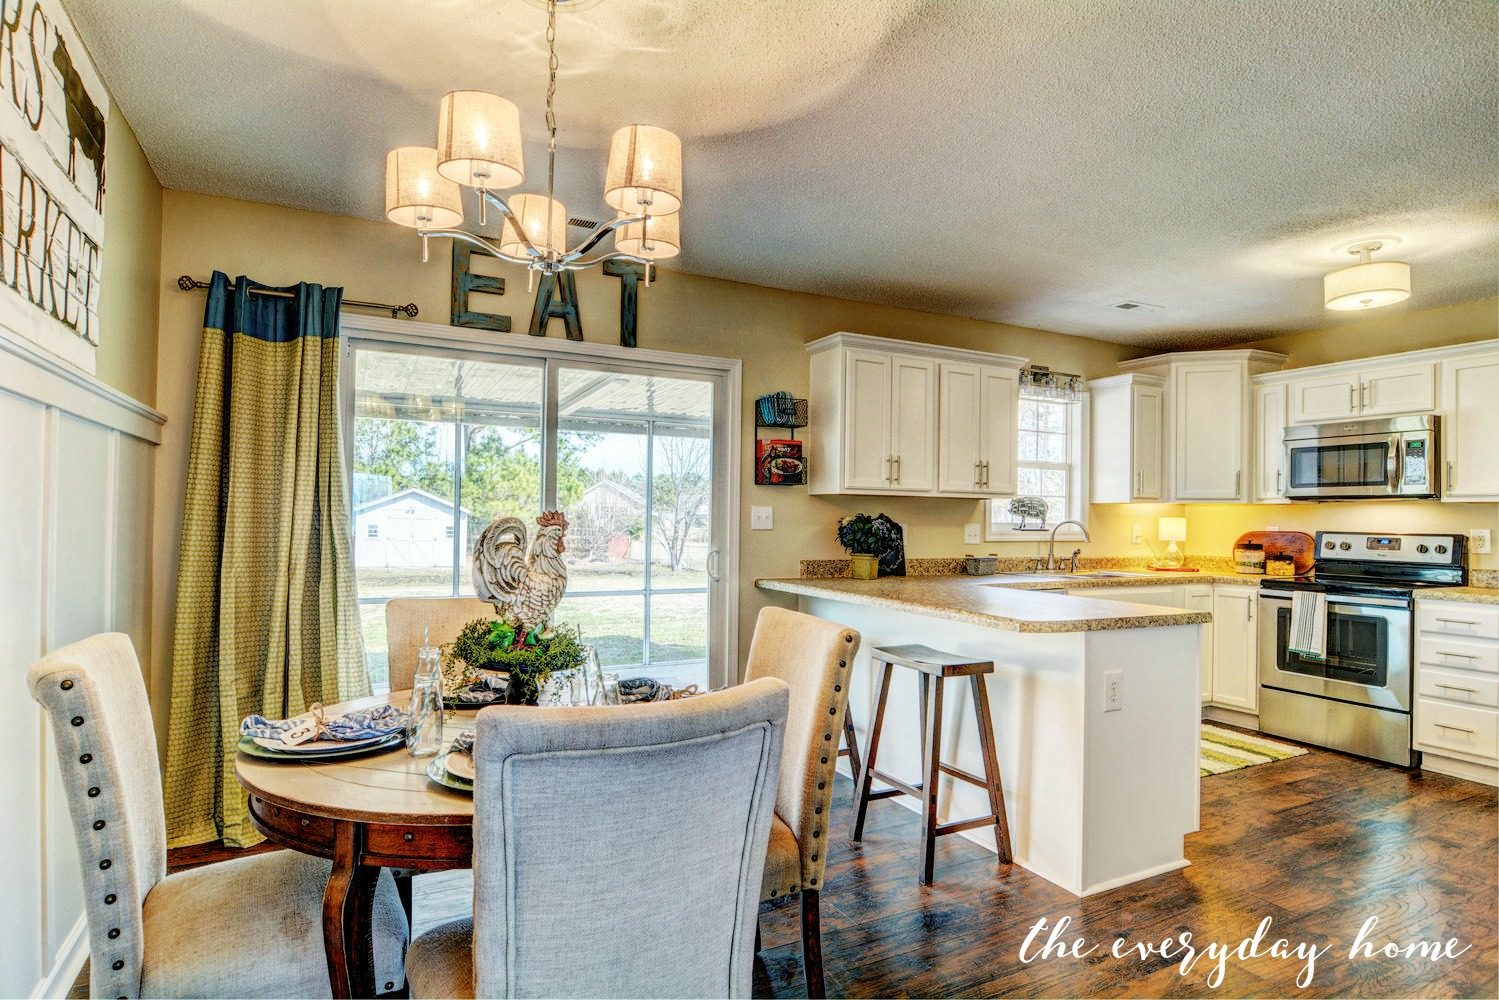 Kitchen and Dining Room Reveal | The Everyday Home